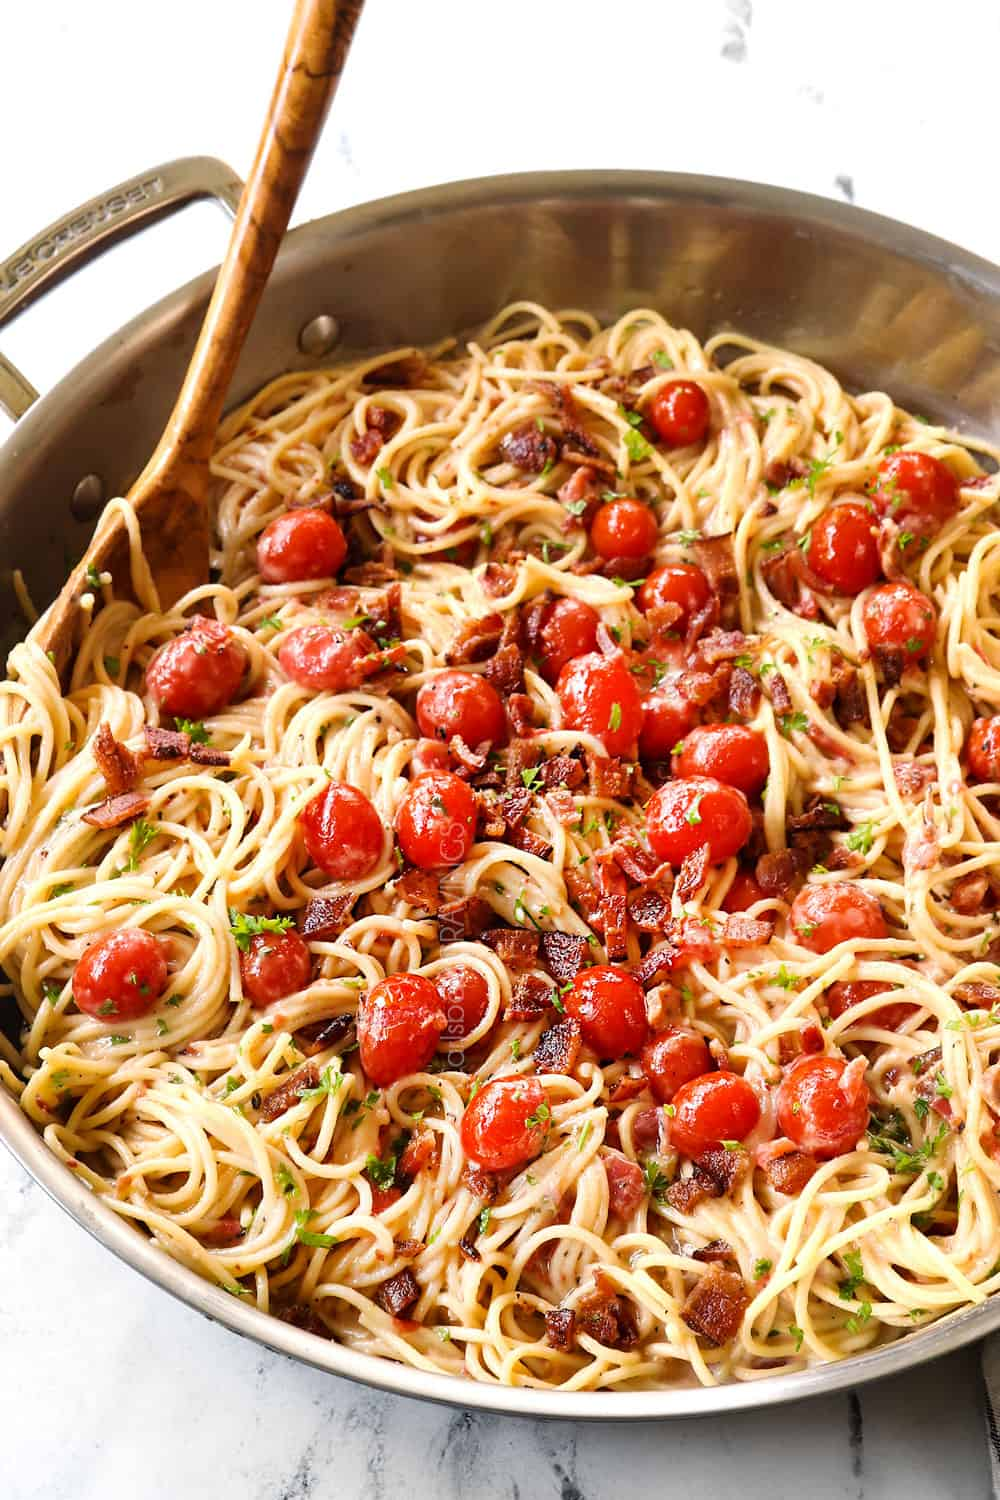 tomato bacon pasta in a skillet garnished by Parmesan